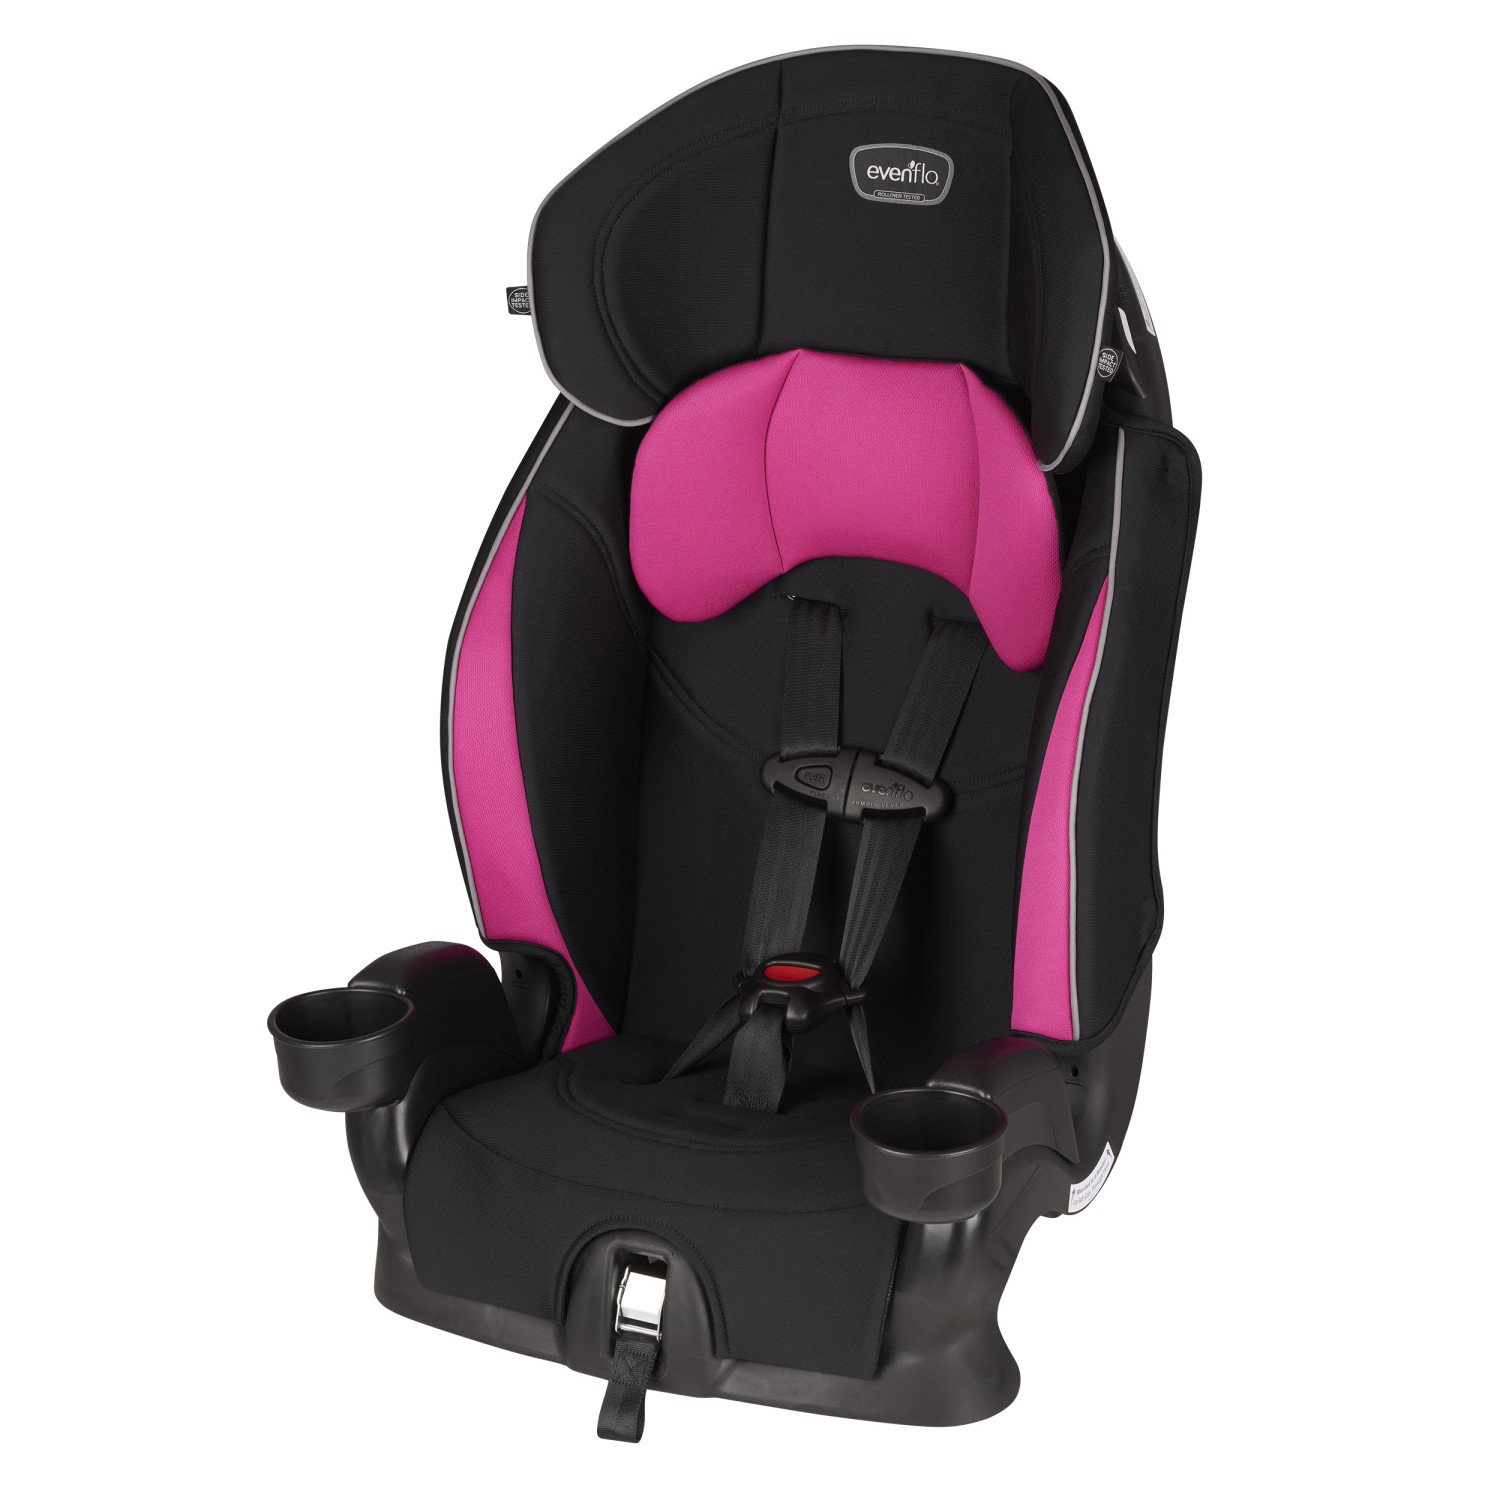 Amazon.com : Evenflo Chase Harnessed Booster, Jubilee : Baby